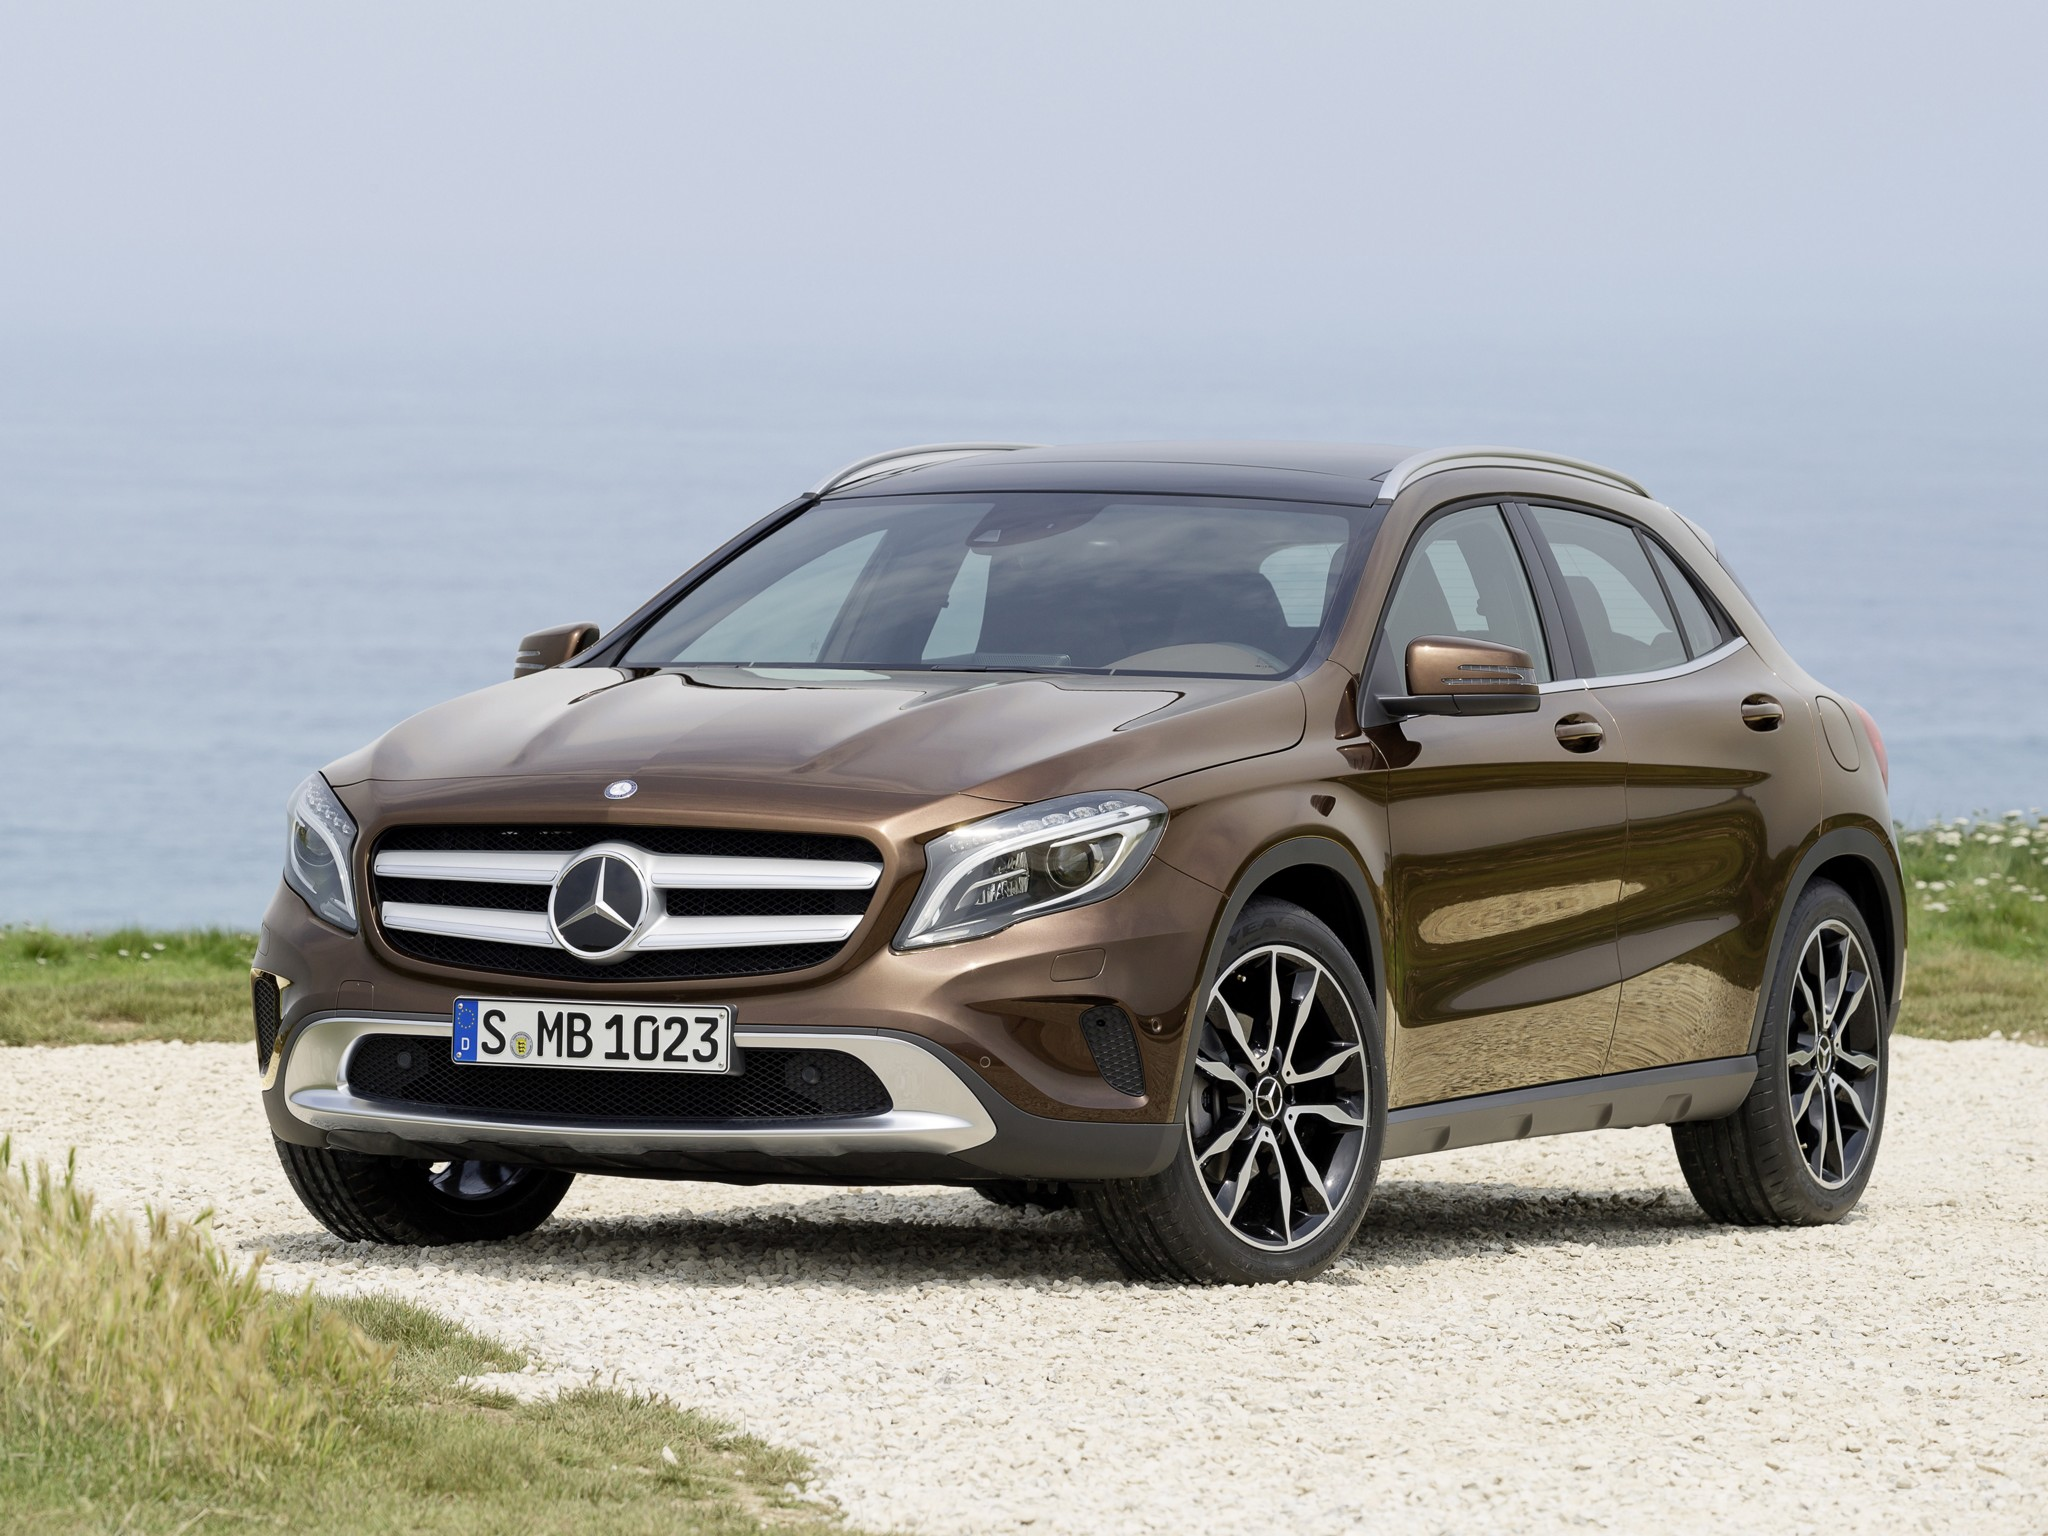 mercedes gla 220 cdi vs volvo v40 cross country d4 the cross hatch comparison autoevolution. Black Bedroom Furniture Sets. Home Design Ideas